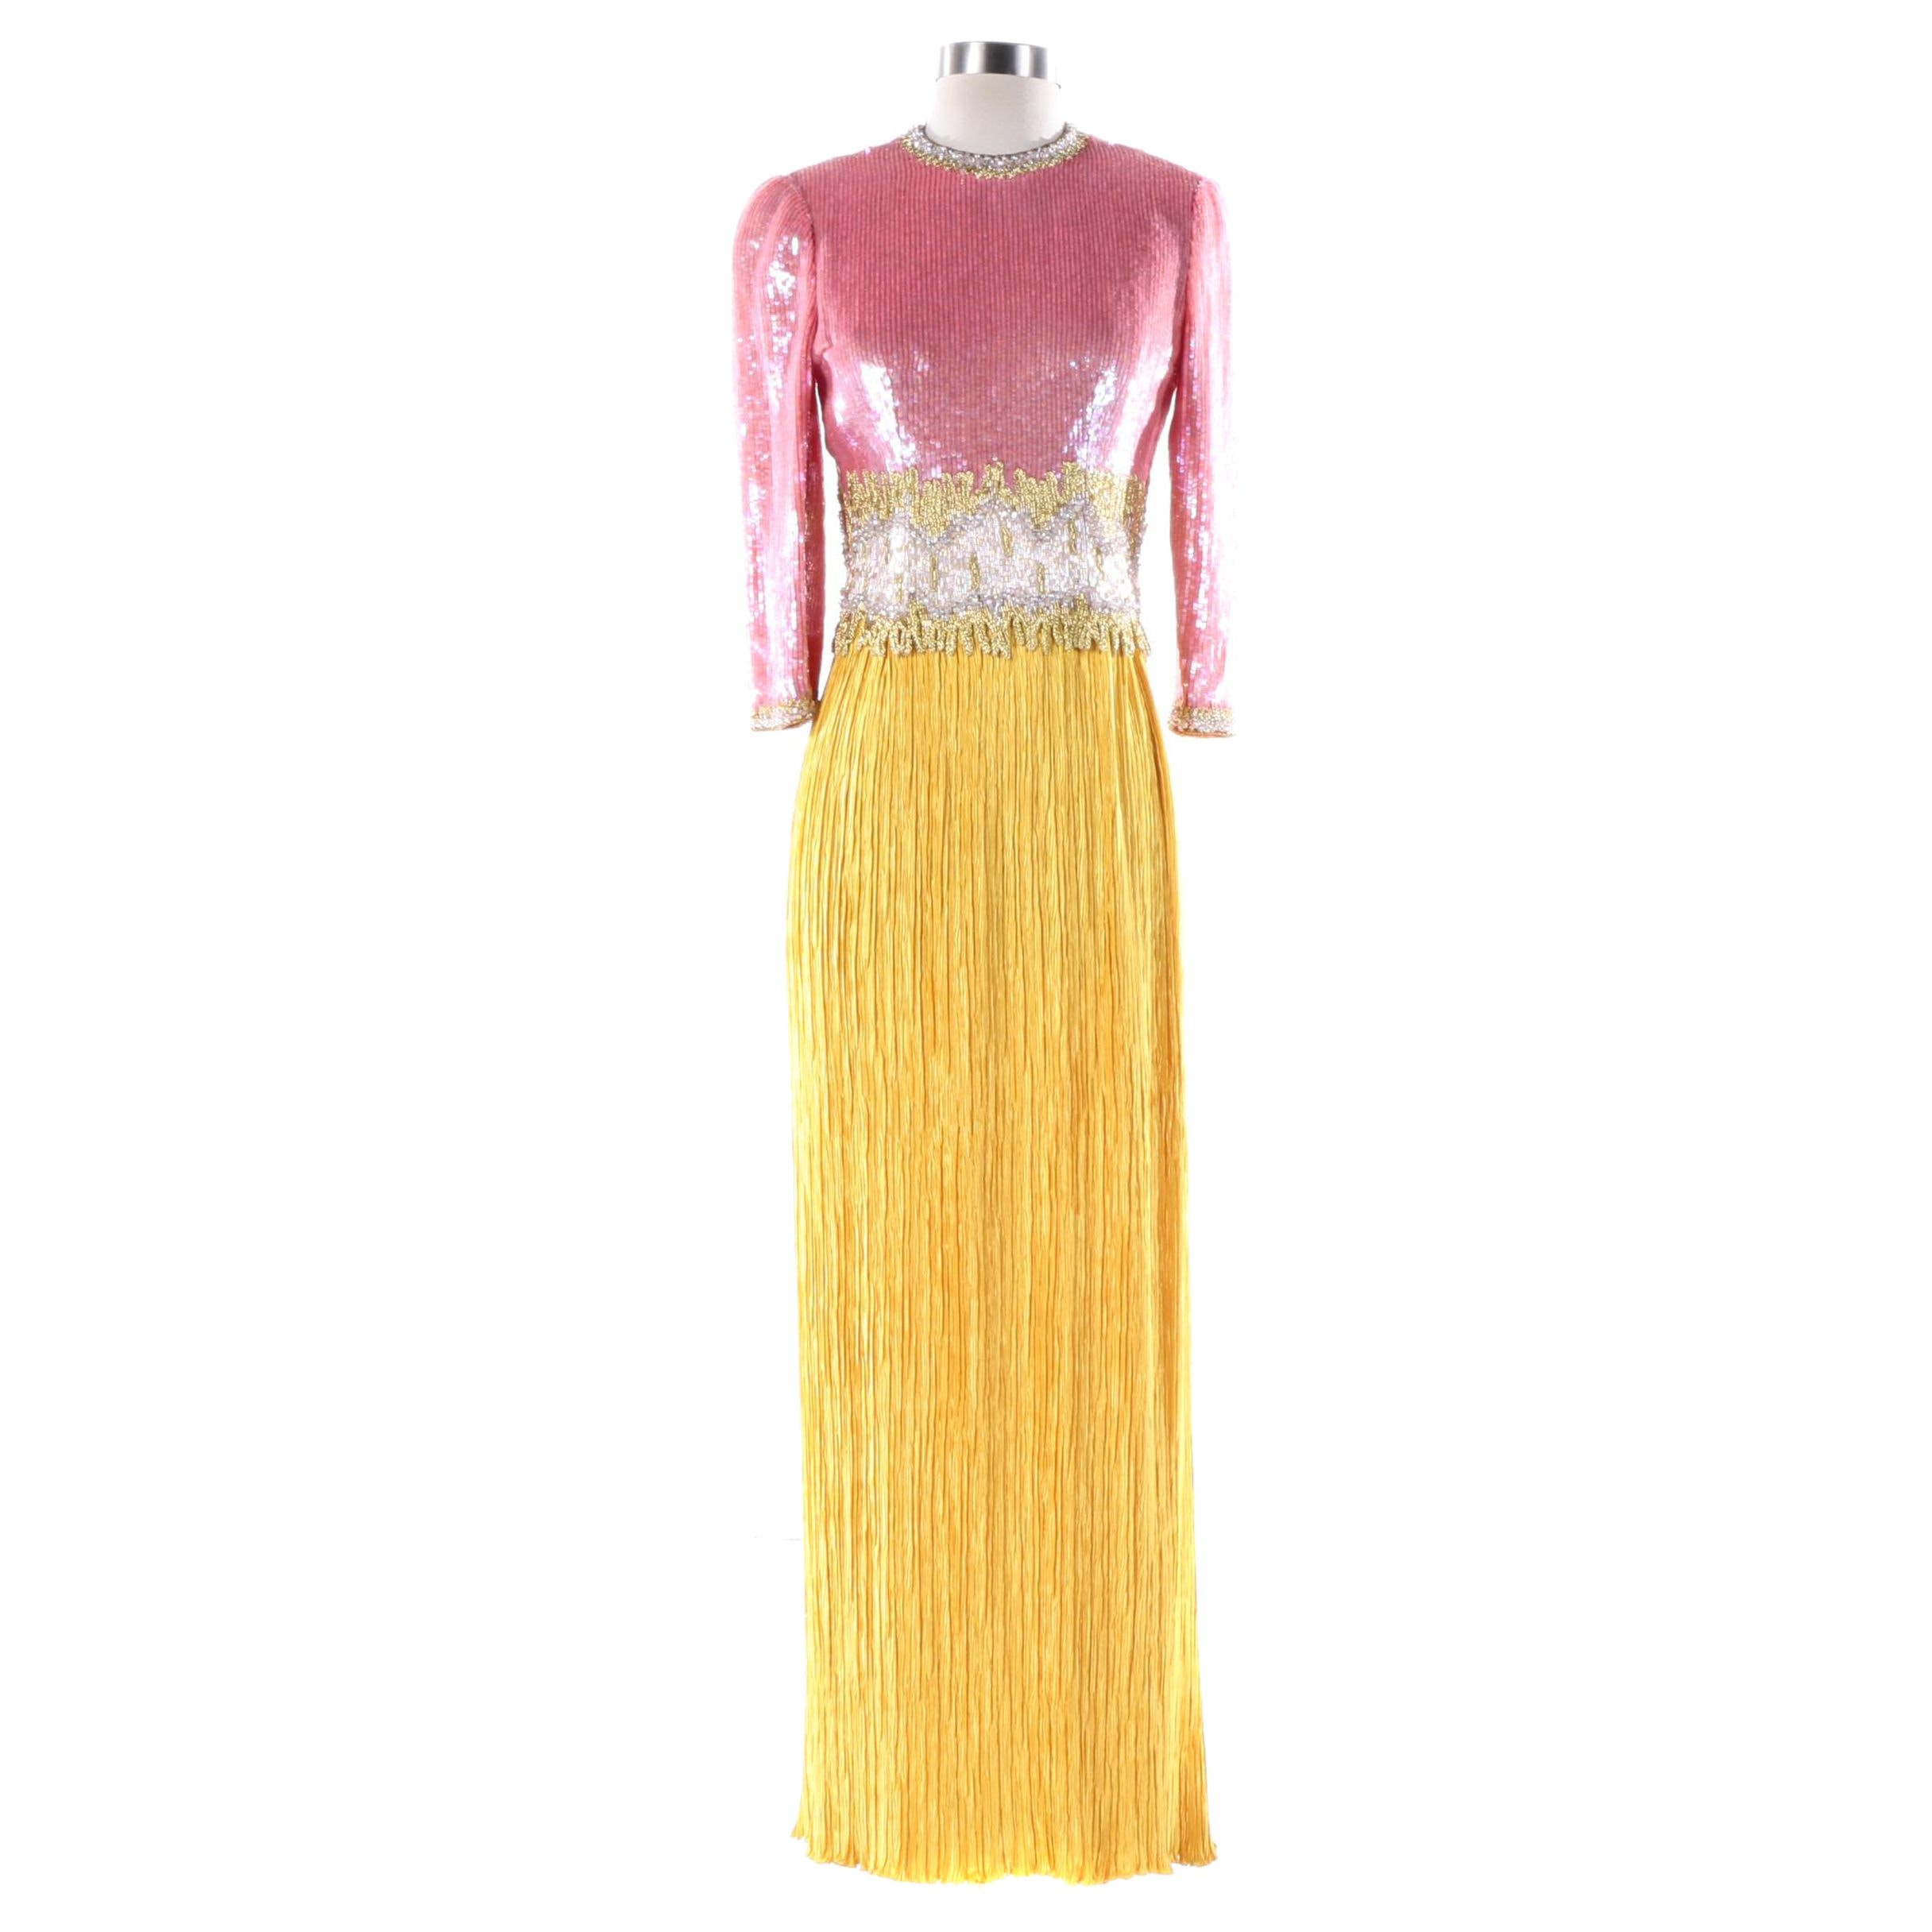 1980s Vintage Mary McFadden Couture Pink Sequin and Gold Pleat Evening Gown